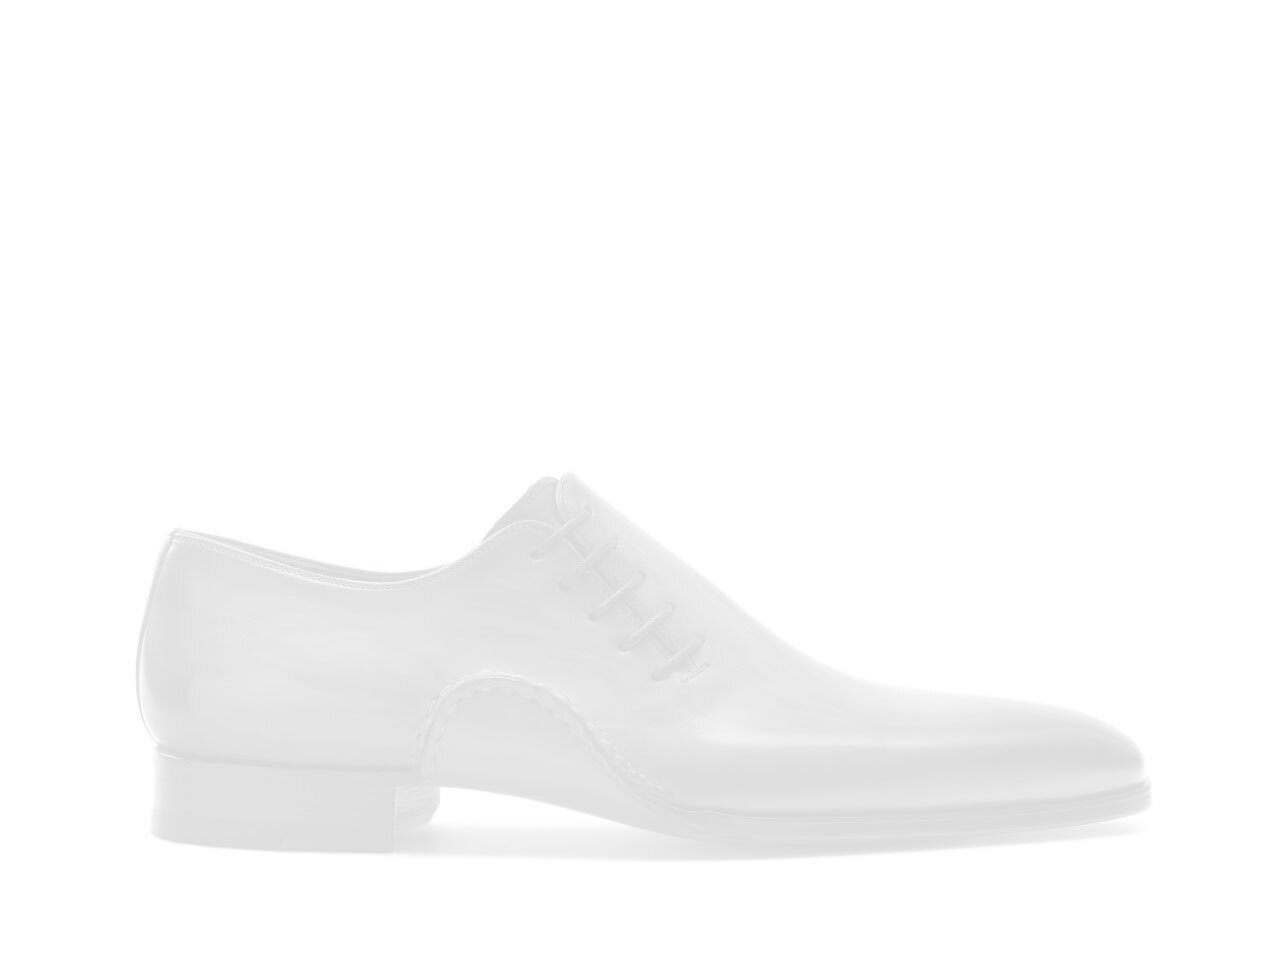 Side view of the Magnanni Reina II White and Grey Men's Sneakers